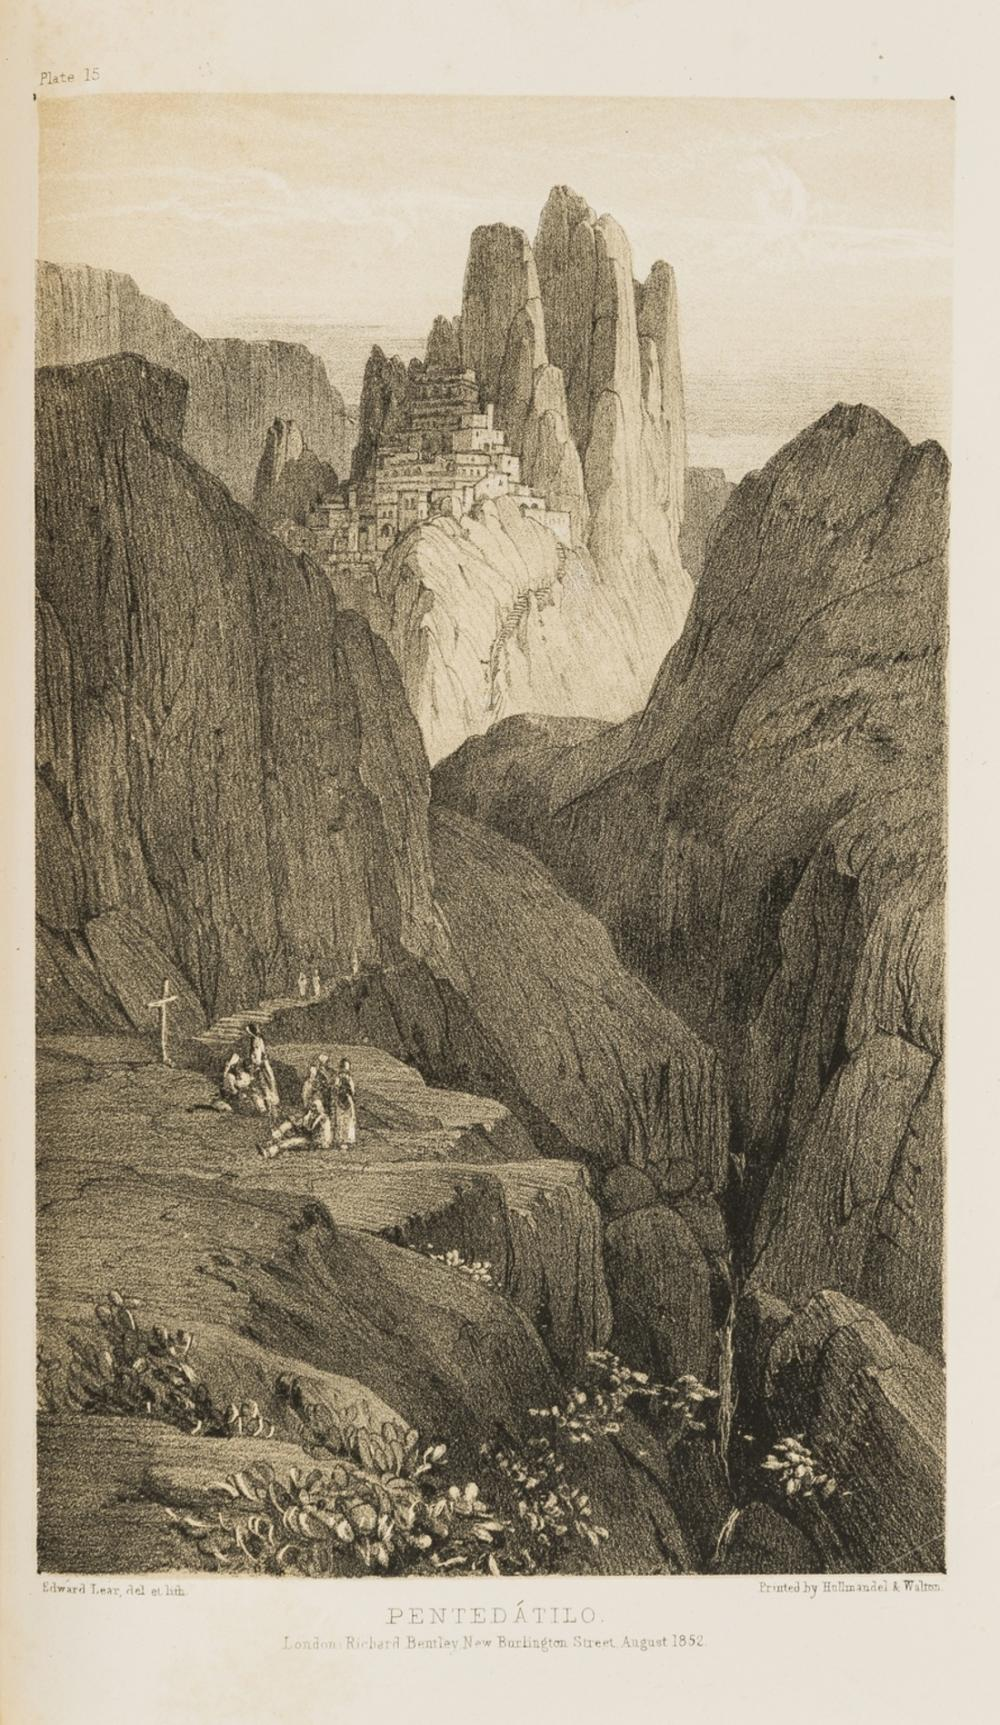 Italy.- Lear (Edward) Journals of a Landscape Painter in Southern Calabria, 2 parts in 1, first edition, inscribed by Douglas Freshfield, 1852.